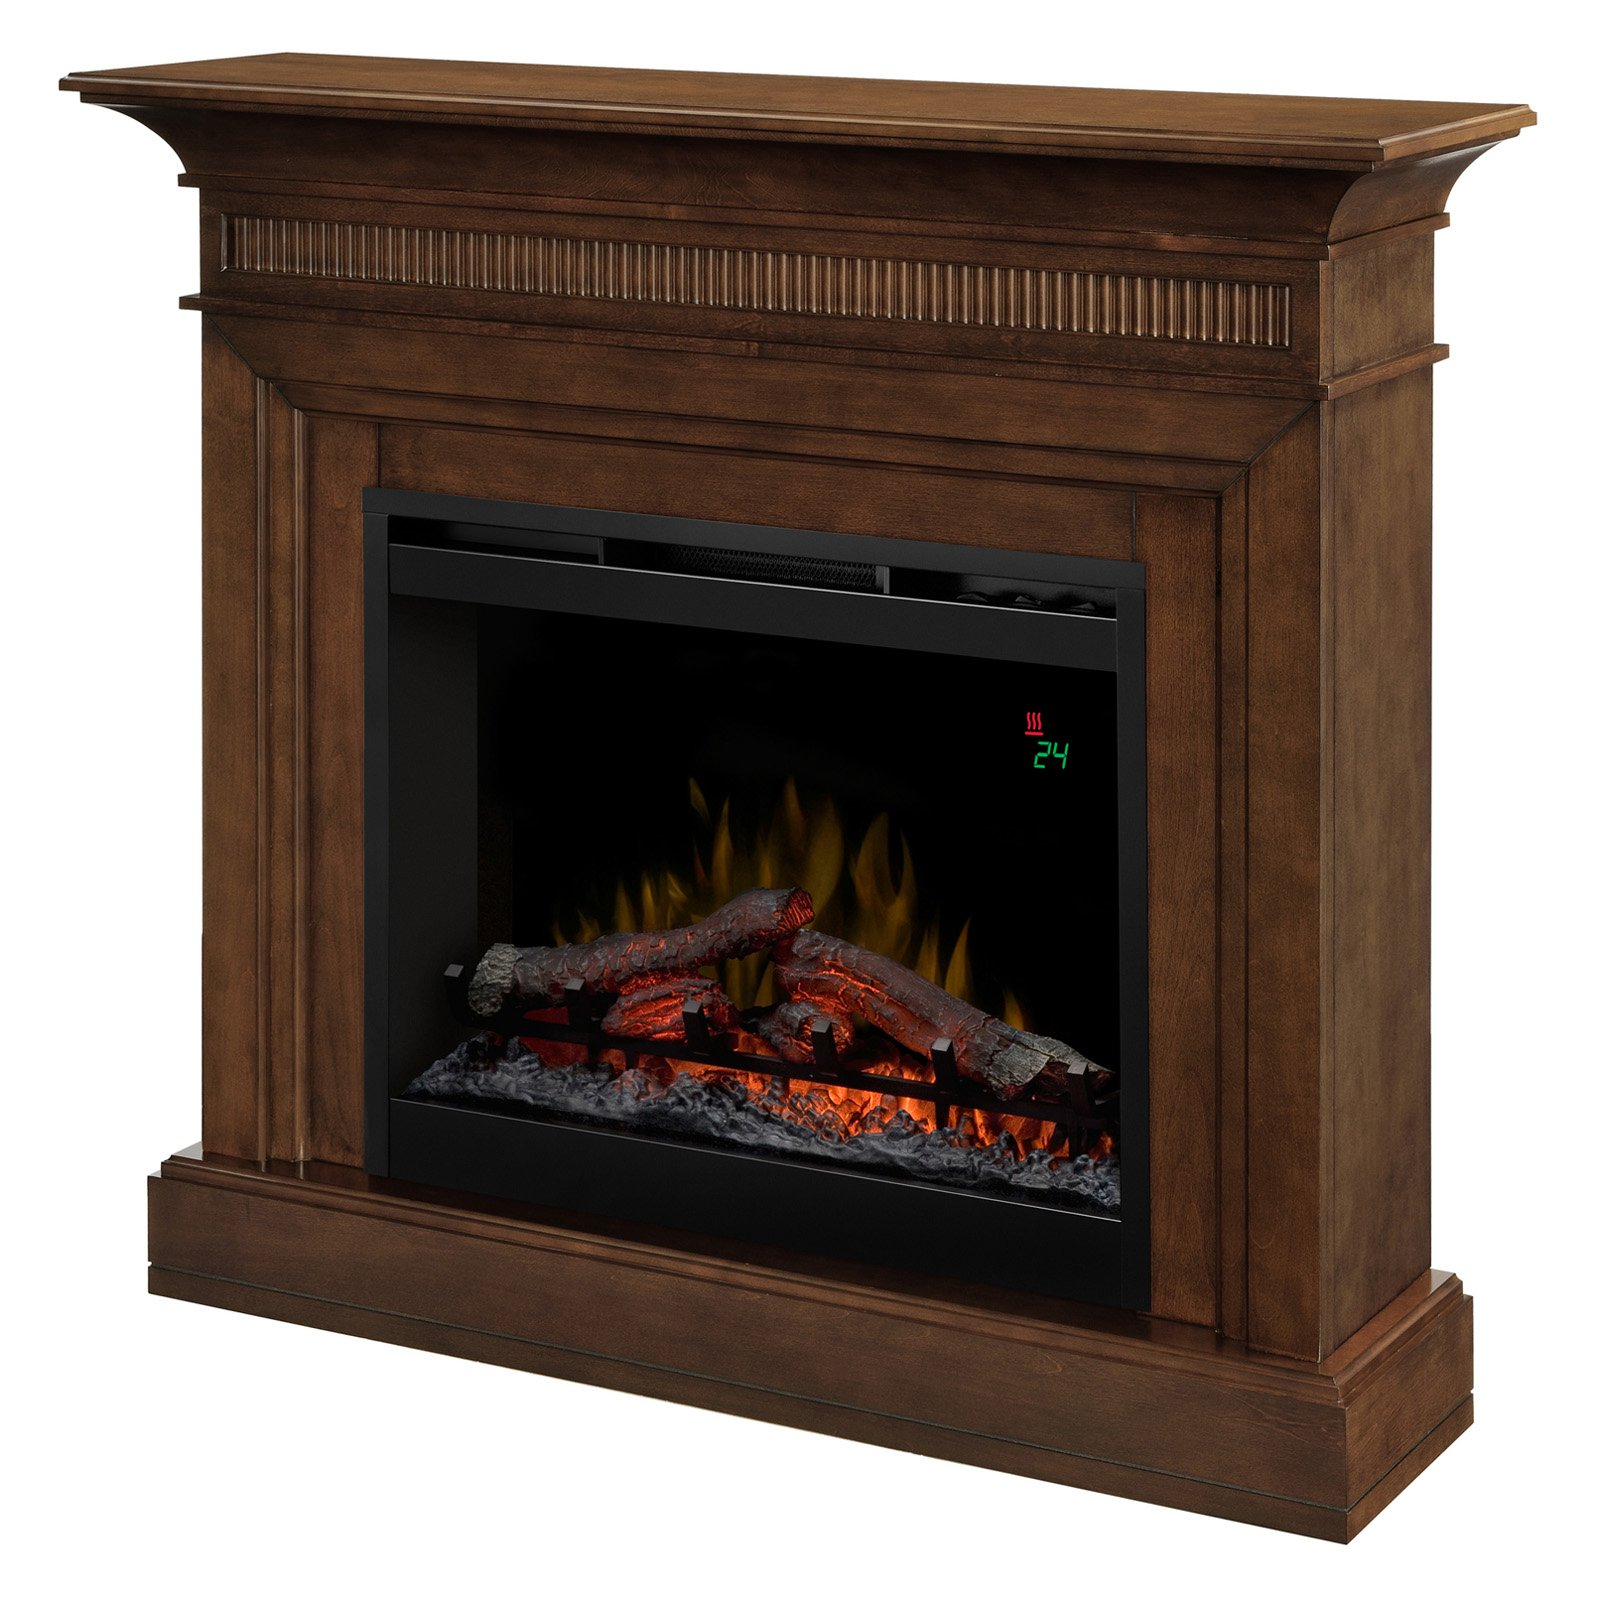 Dimplex Harleigh Walnut Electric Fireplace by Glen Dimplex Group